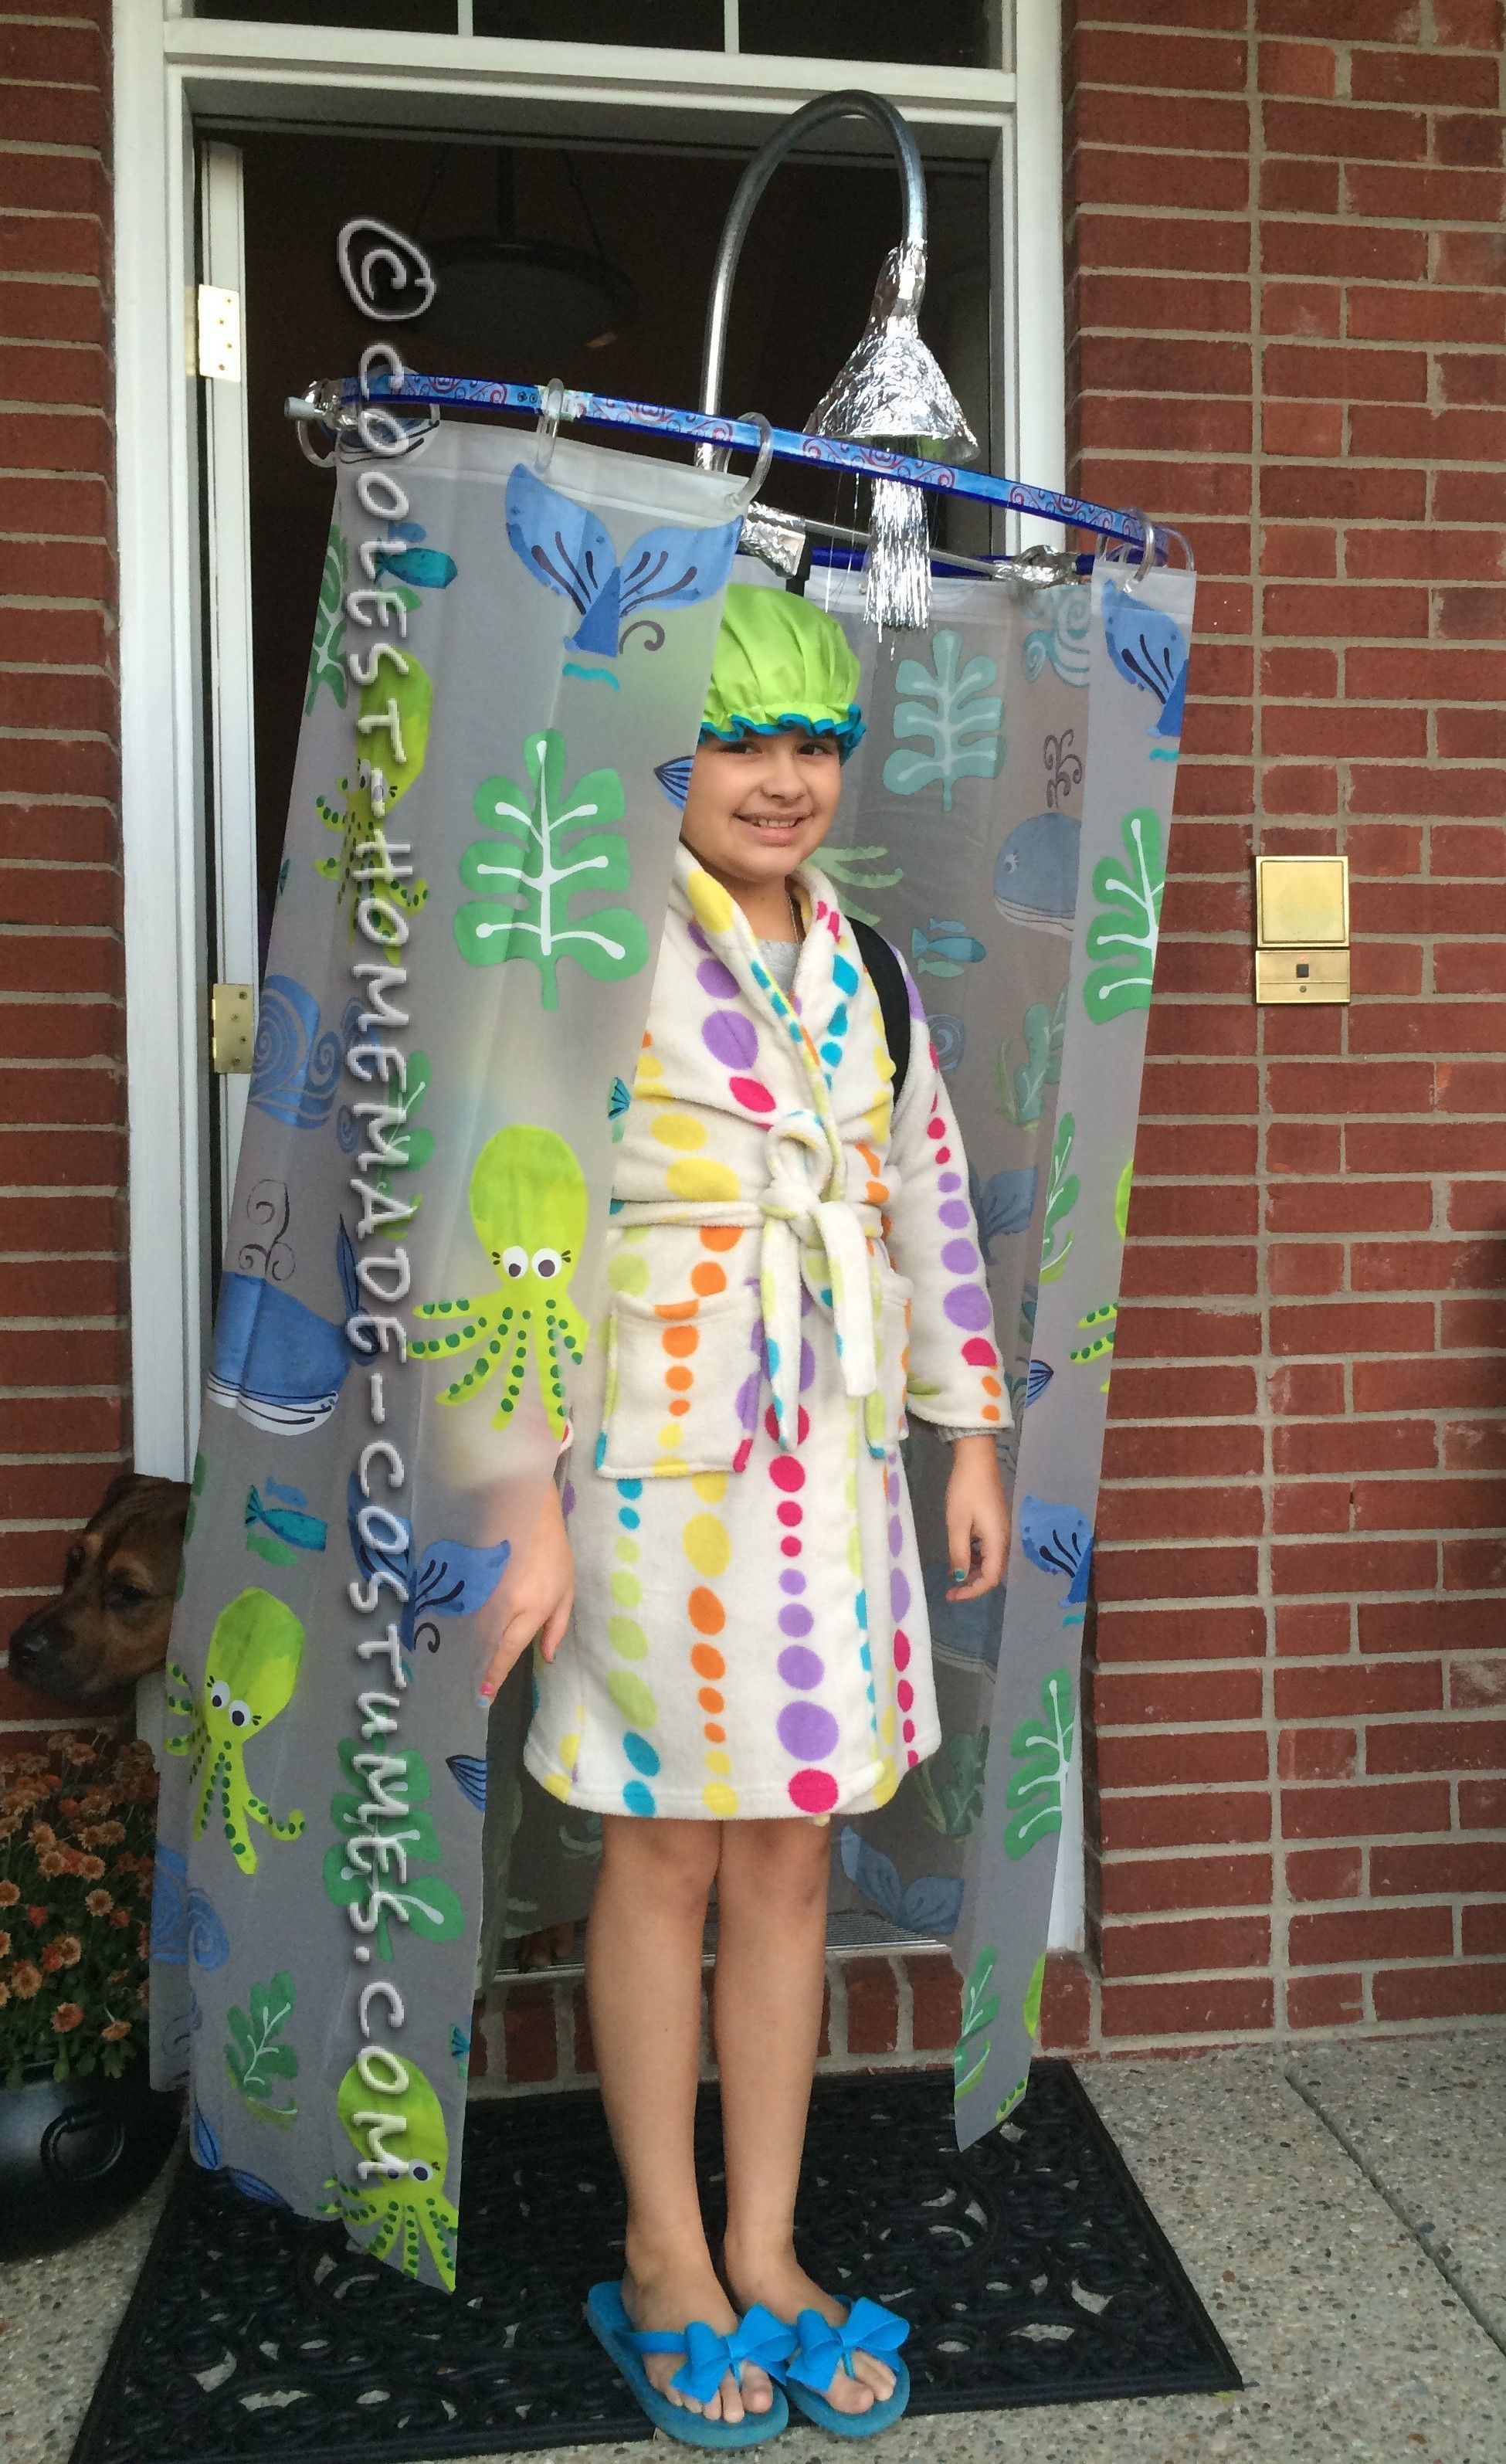 cool diy costume idea: shower curtain costume | coolest homemade